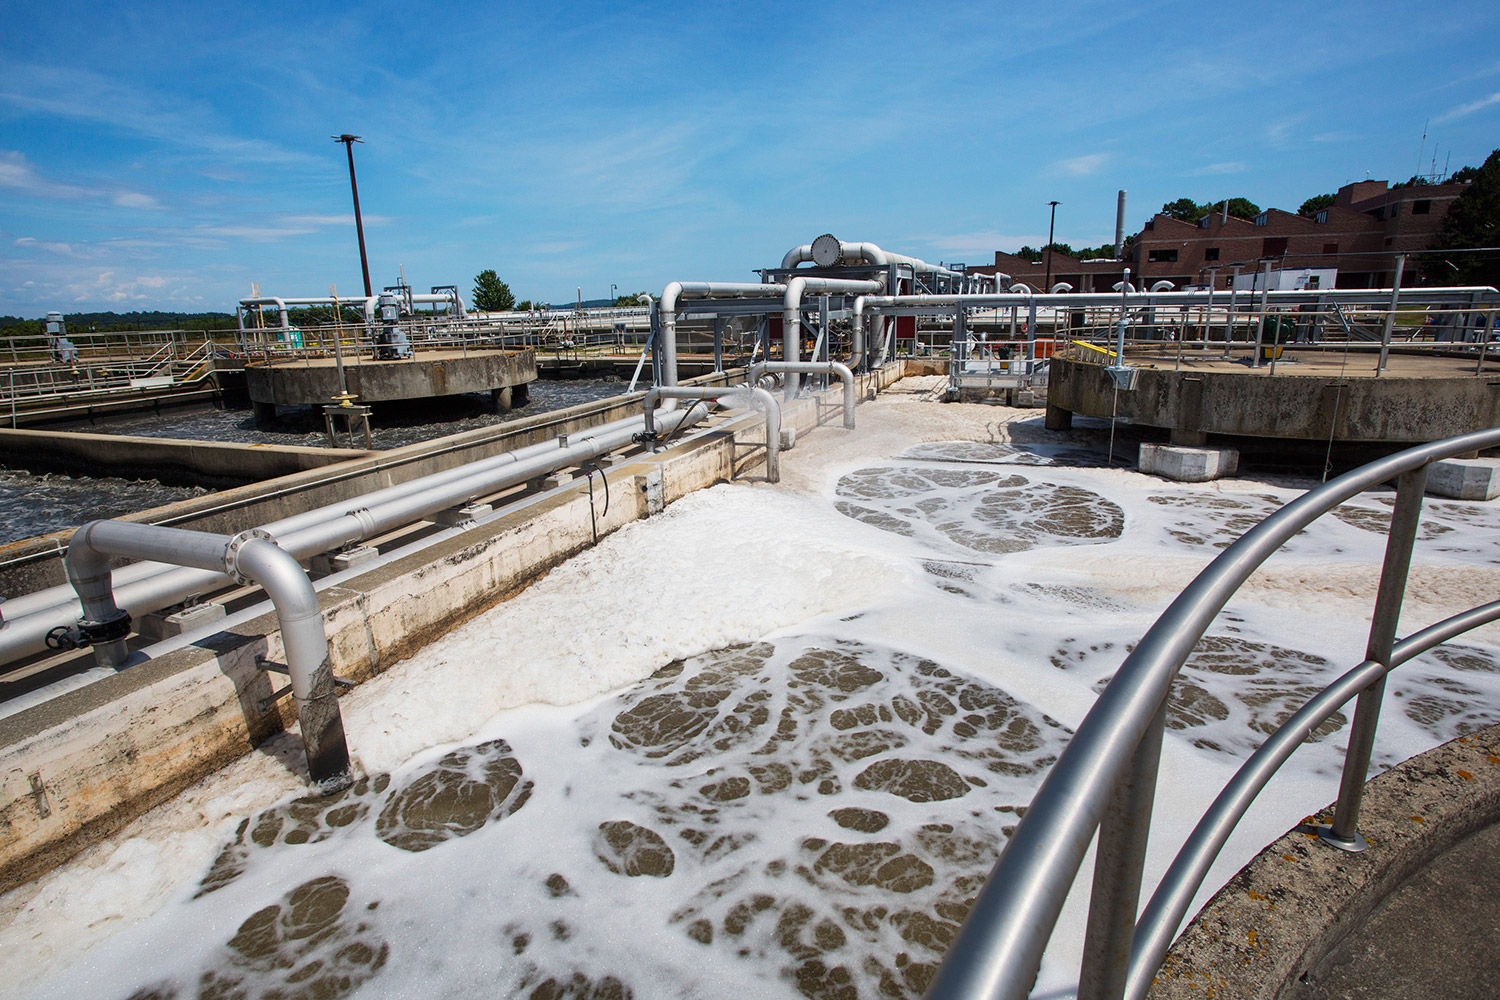 Inadequate aeration of sewage in open tanks at the East End Wastewater Treatment Plant coincided with the year's warmest and most humid months.